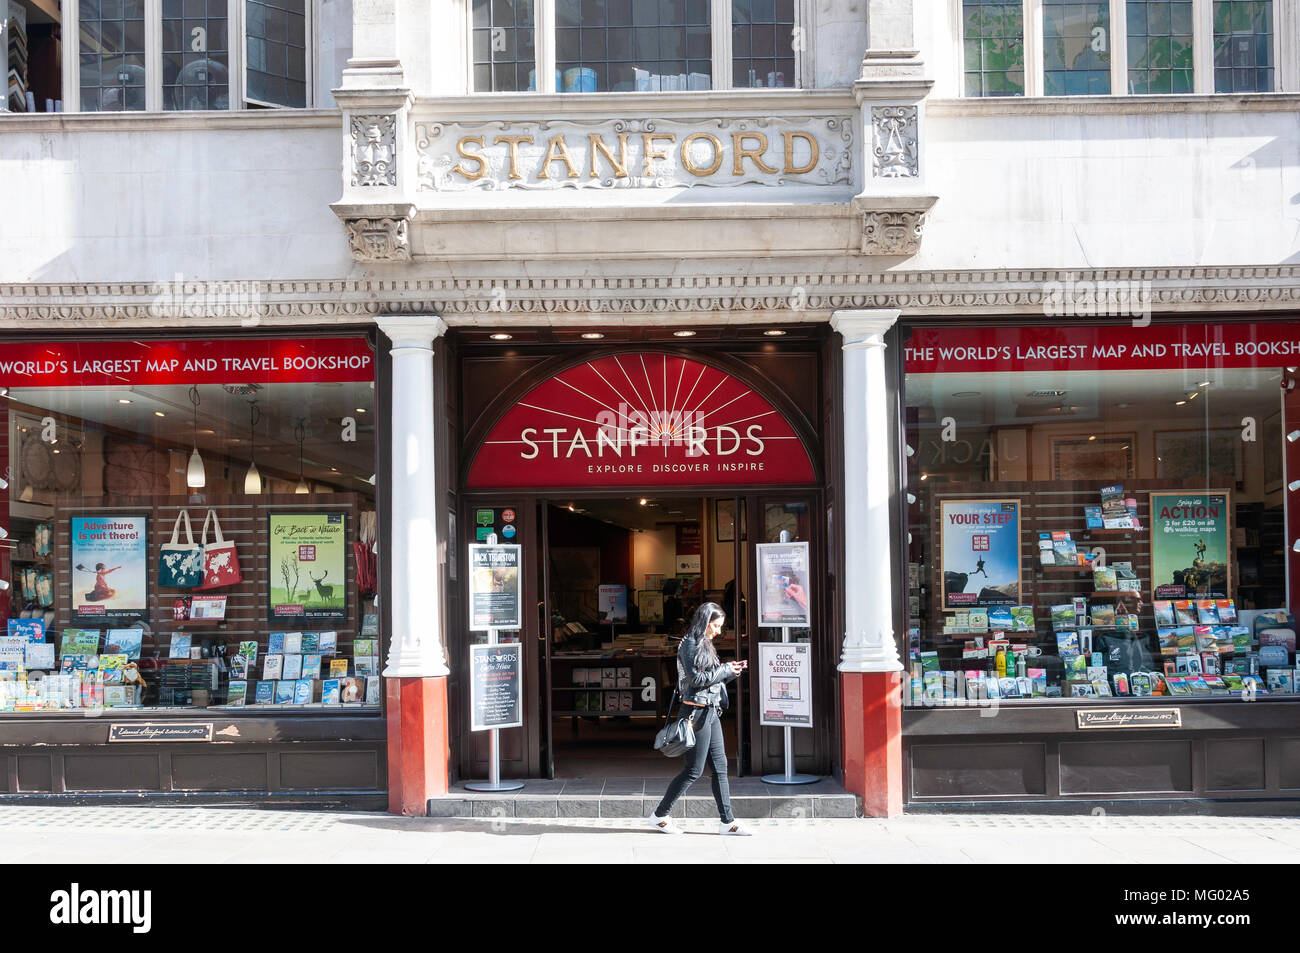 Stanfords, Librairie de voyage Long Acre, Covent Garden, City of westminster, Greater London, Angleterre, Royaume-Uni Photo Stock